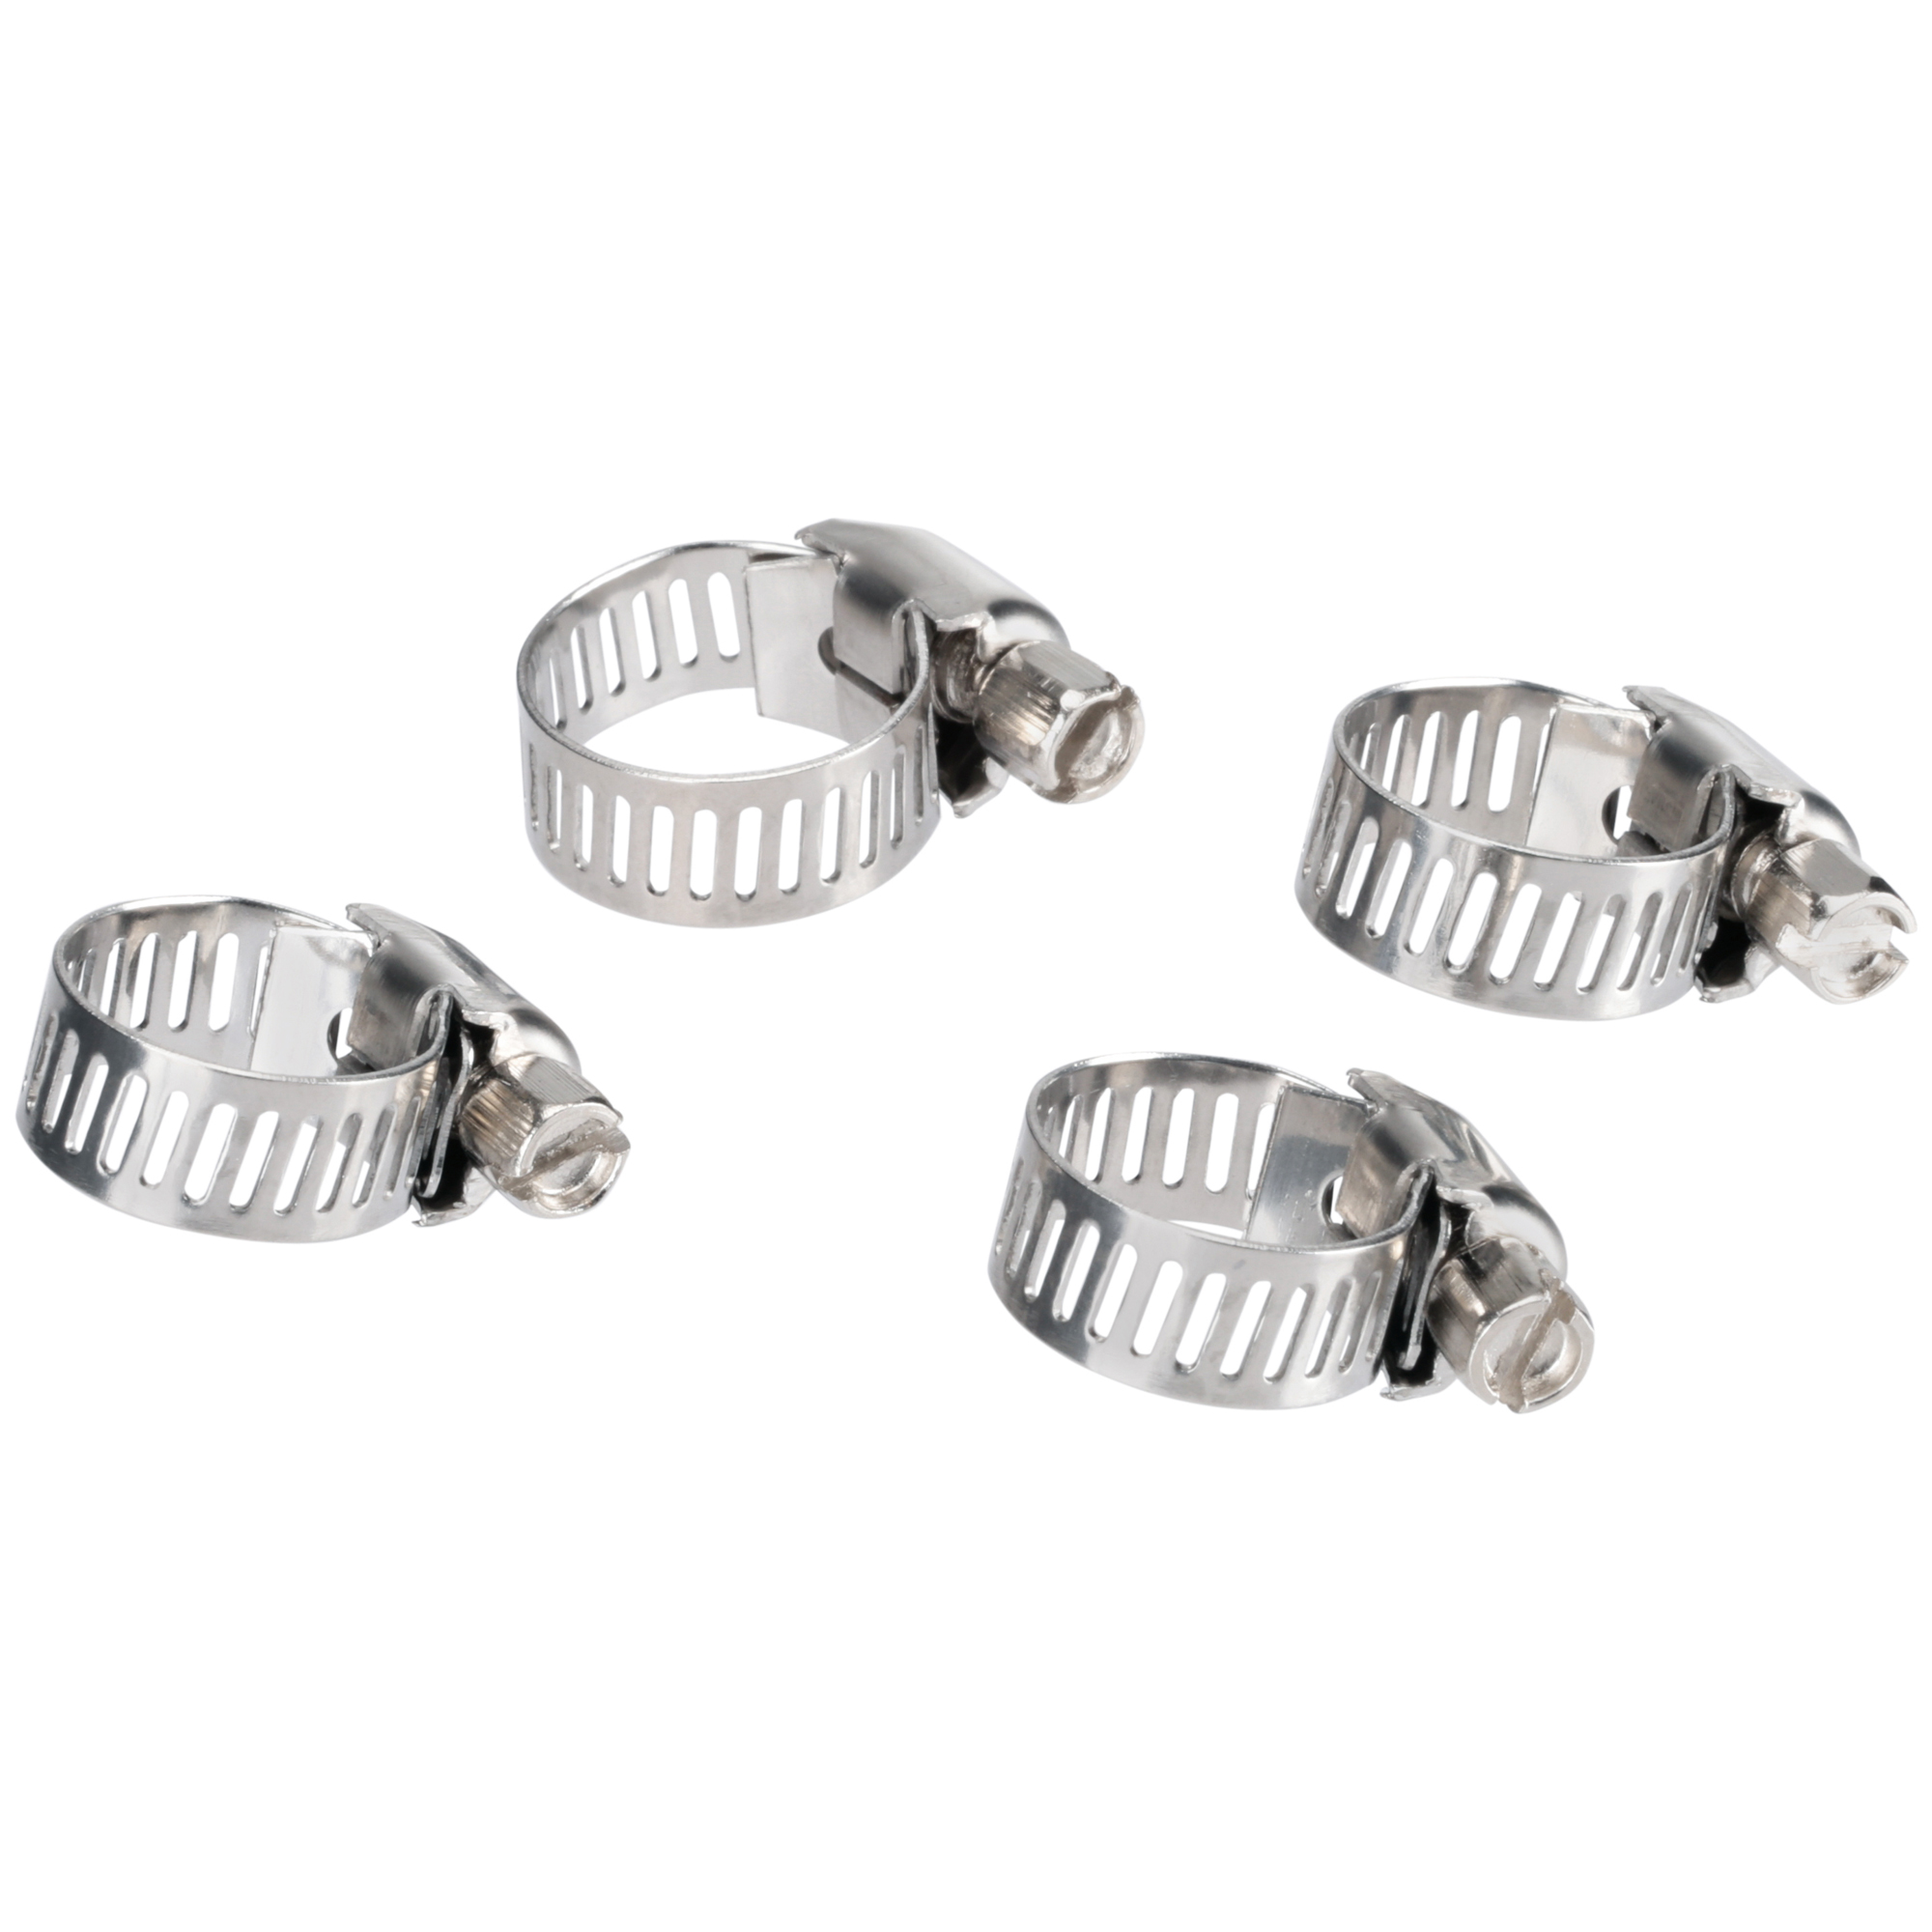 Shop Craft Stainless Steel Bands Hose Clamps 4 Ct Pack